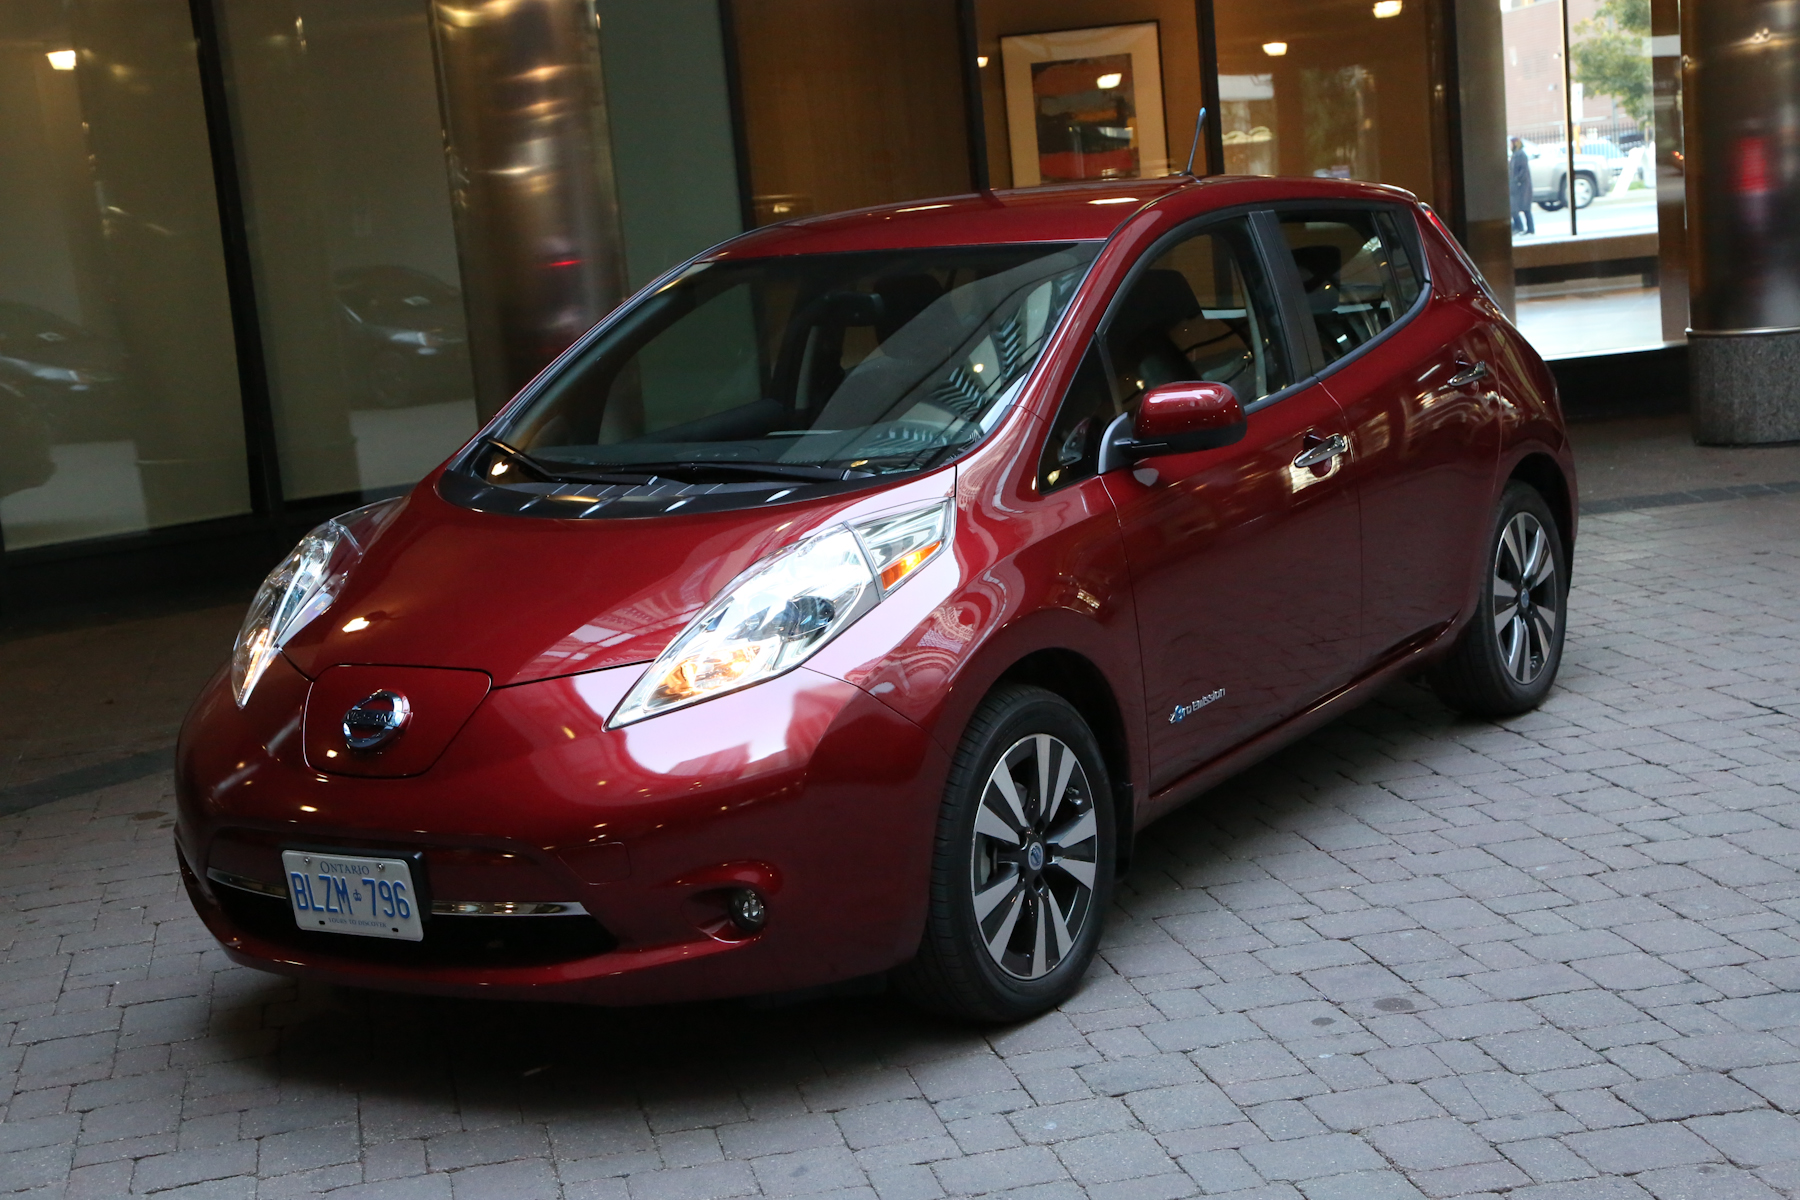 Nissan Leaf Charger >> 2016 Nissan Leaf: Nissan can't keep up BMW i3 and others